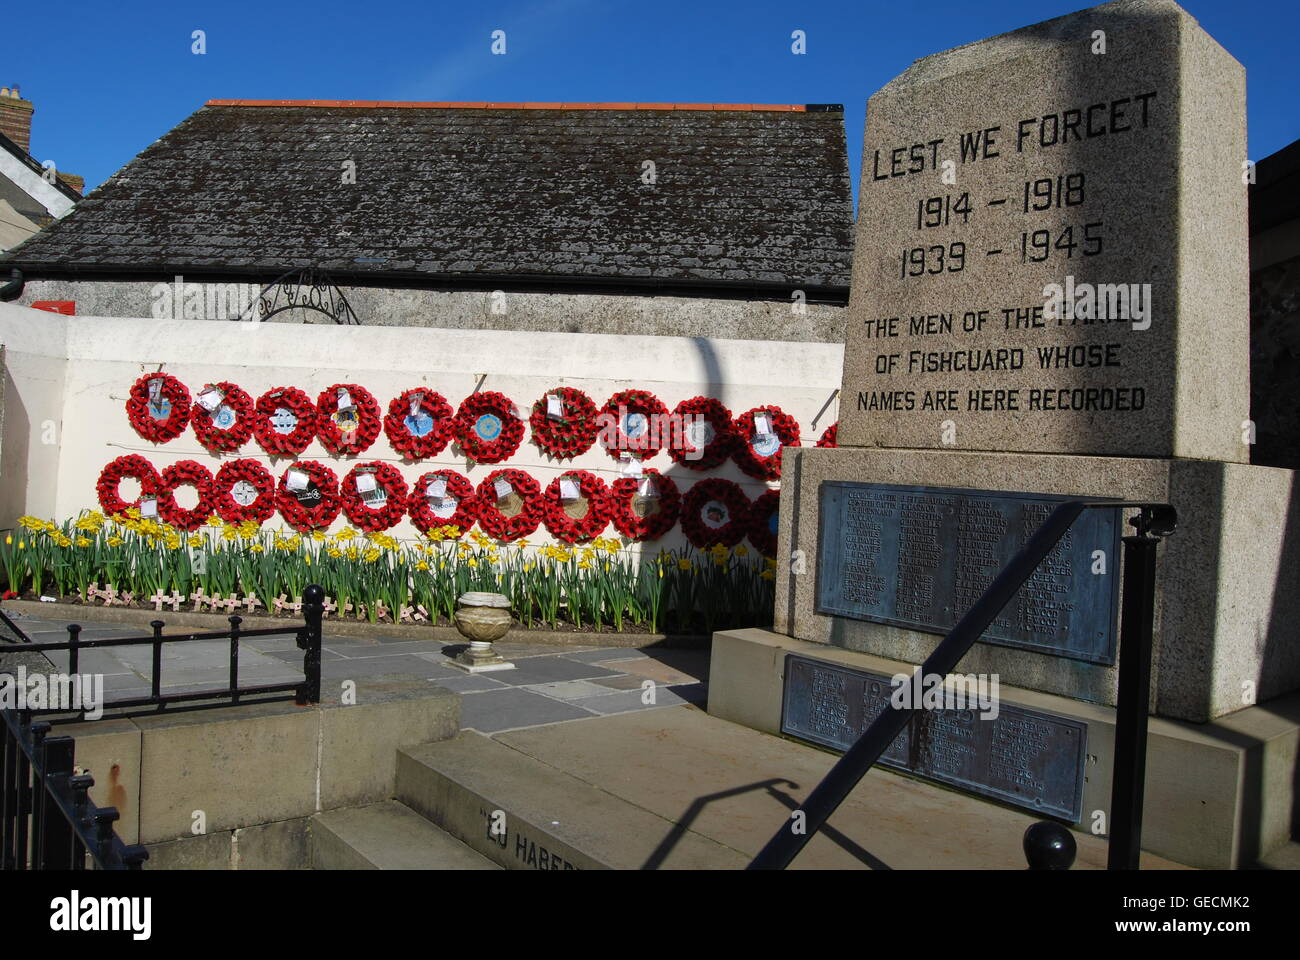 Fishguard Memorial - Stock Image